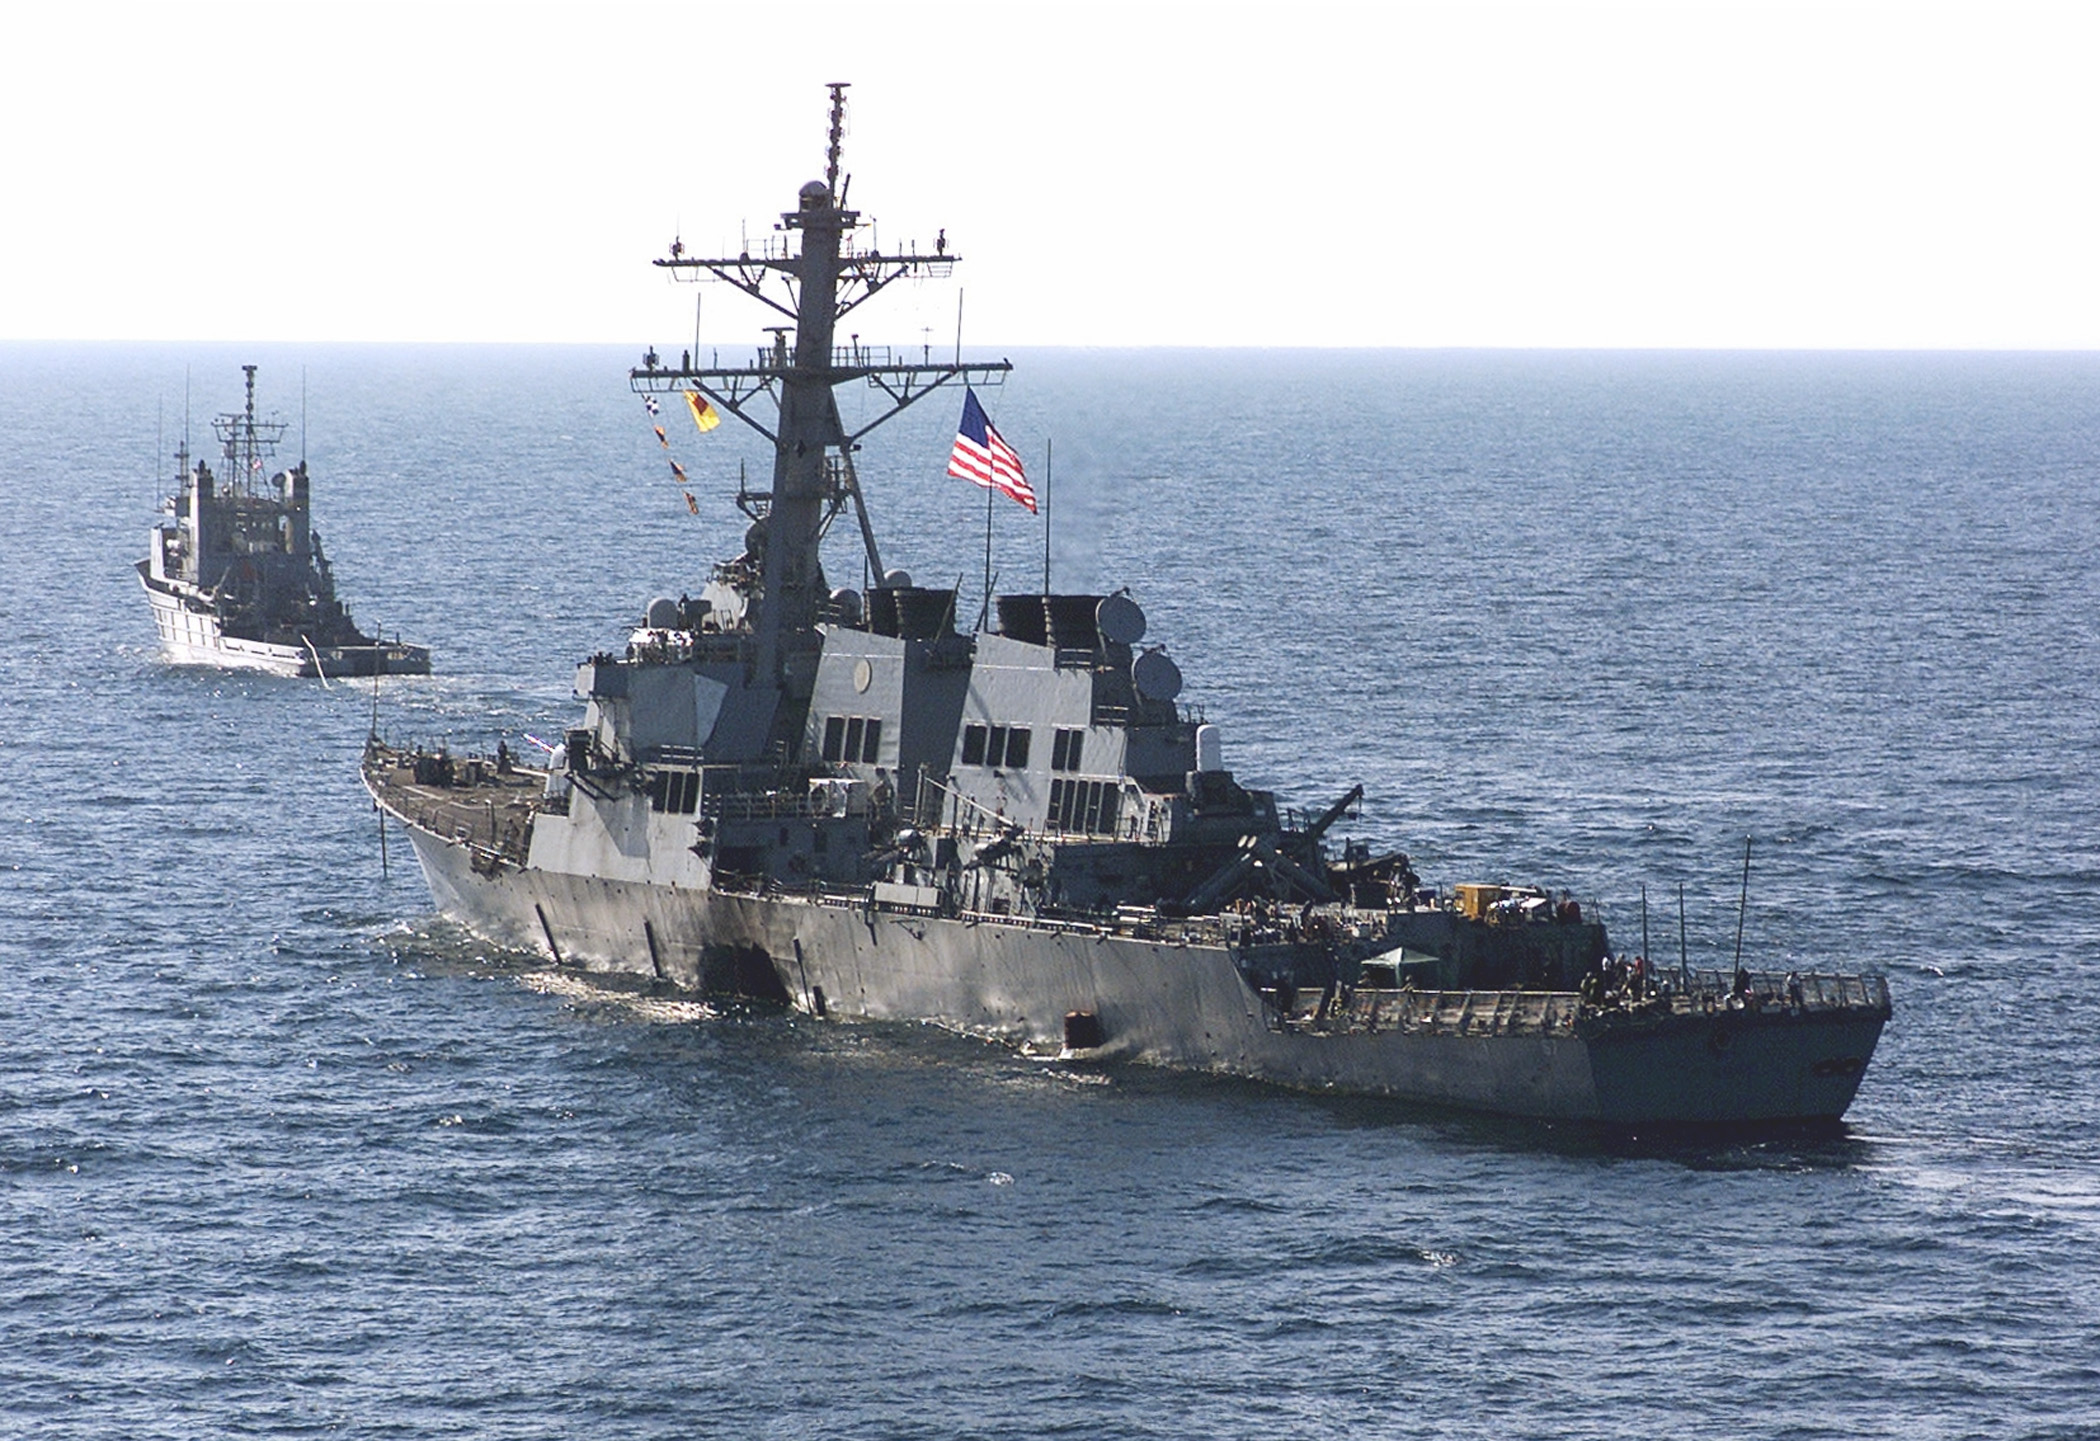 Attack on uss cole